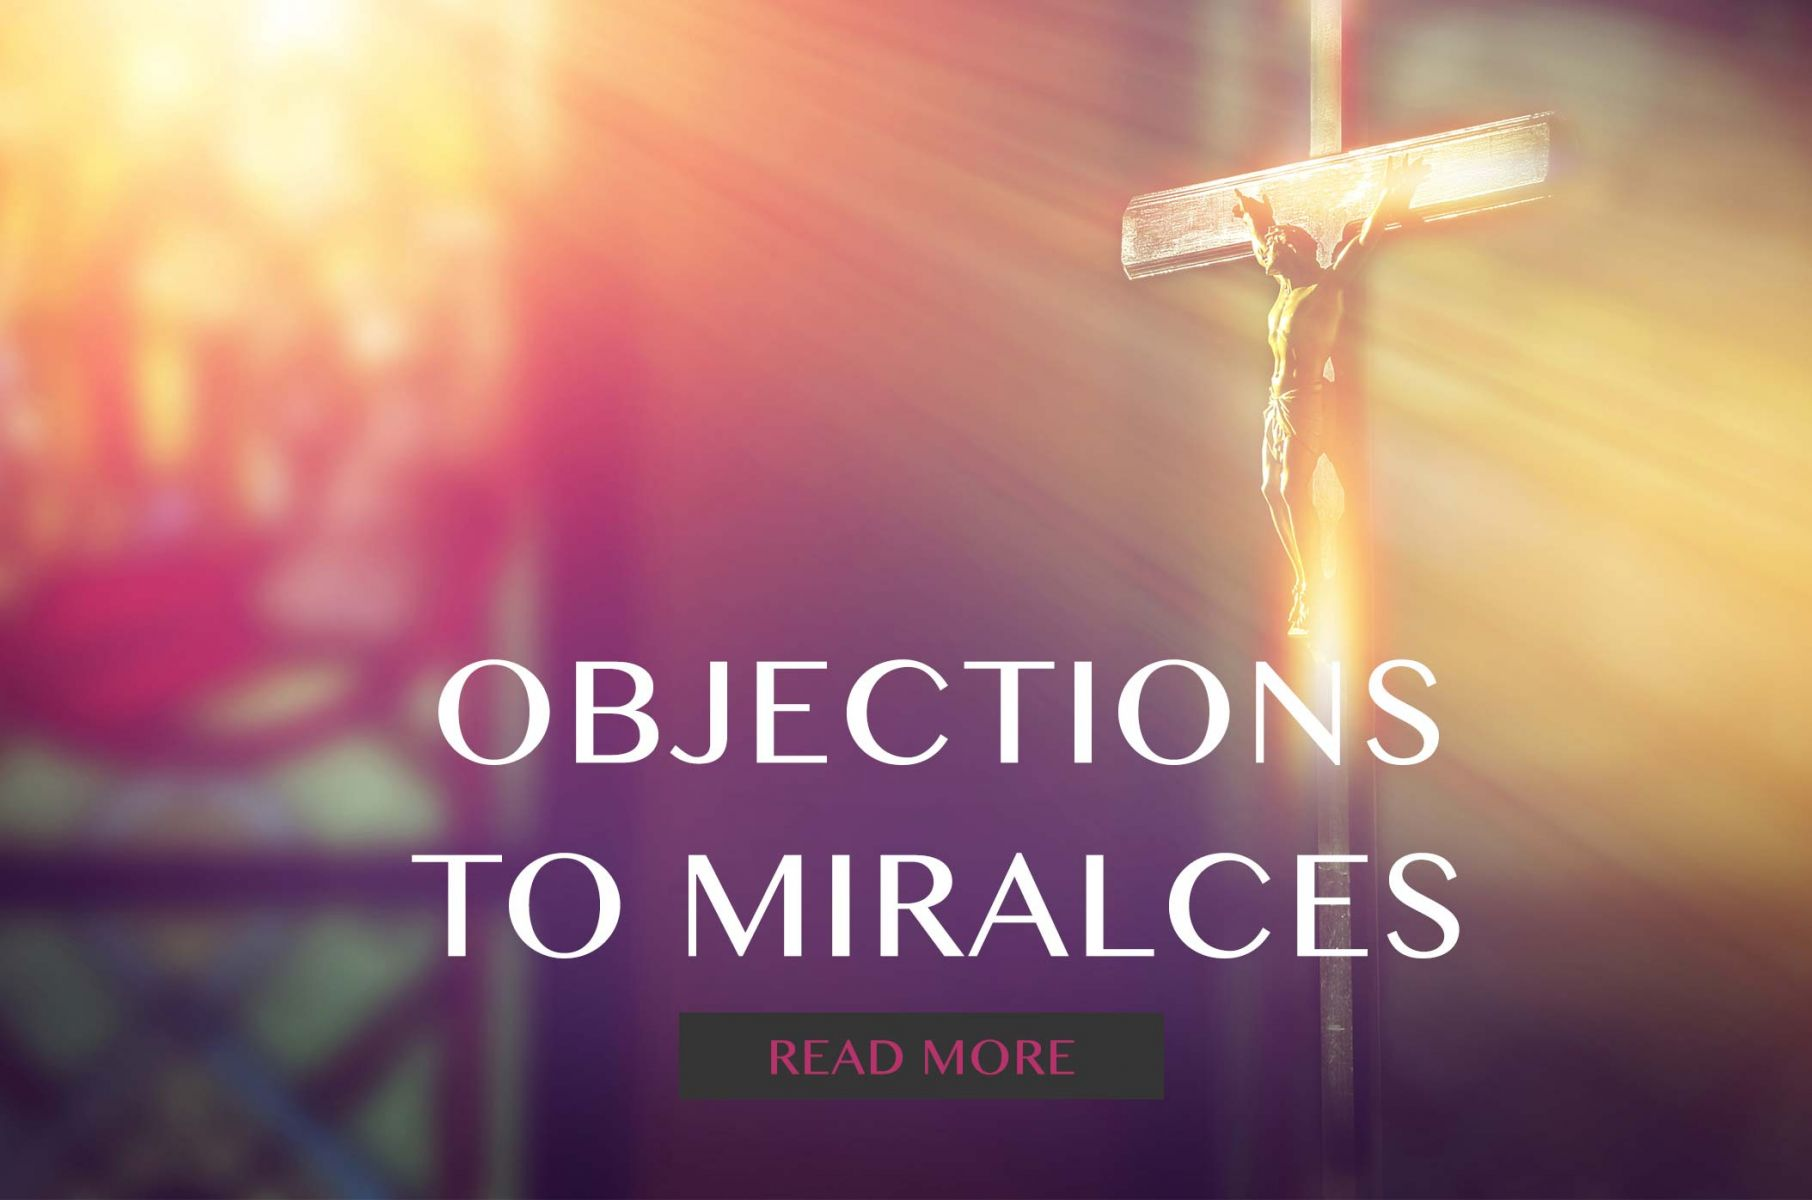 objections-to-miracles